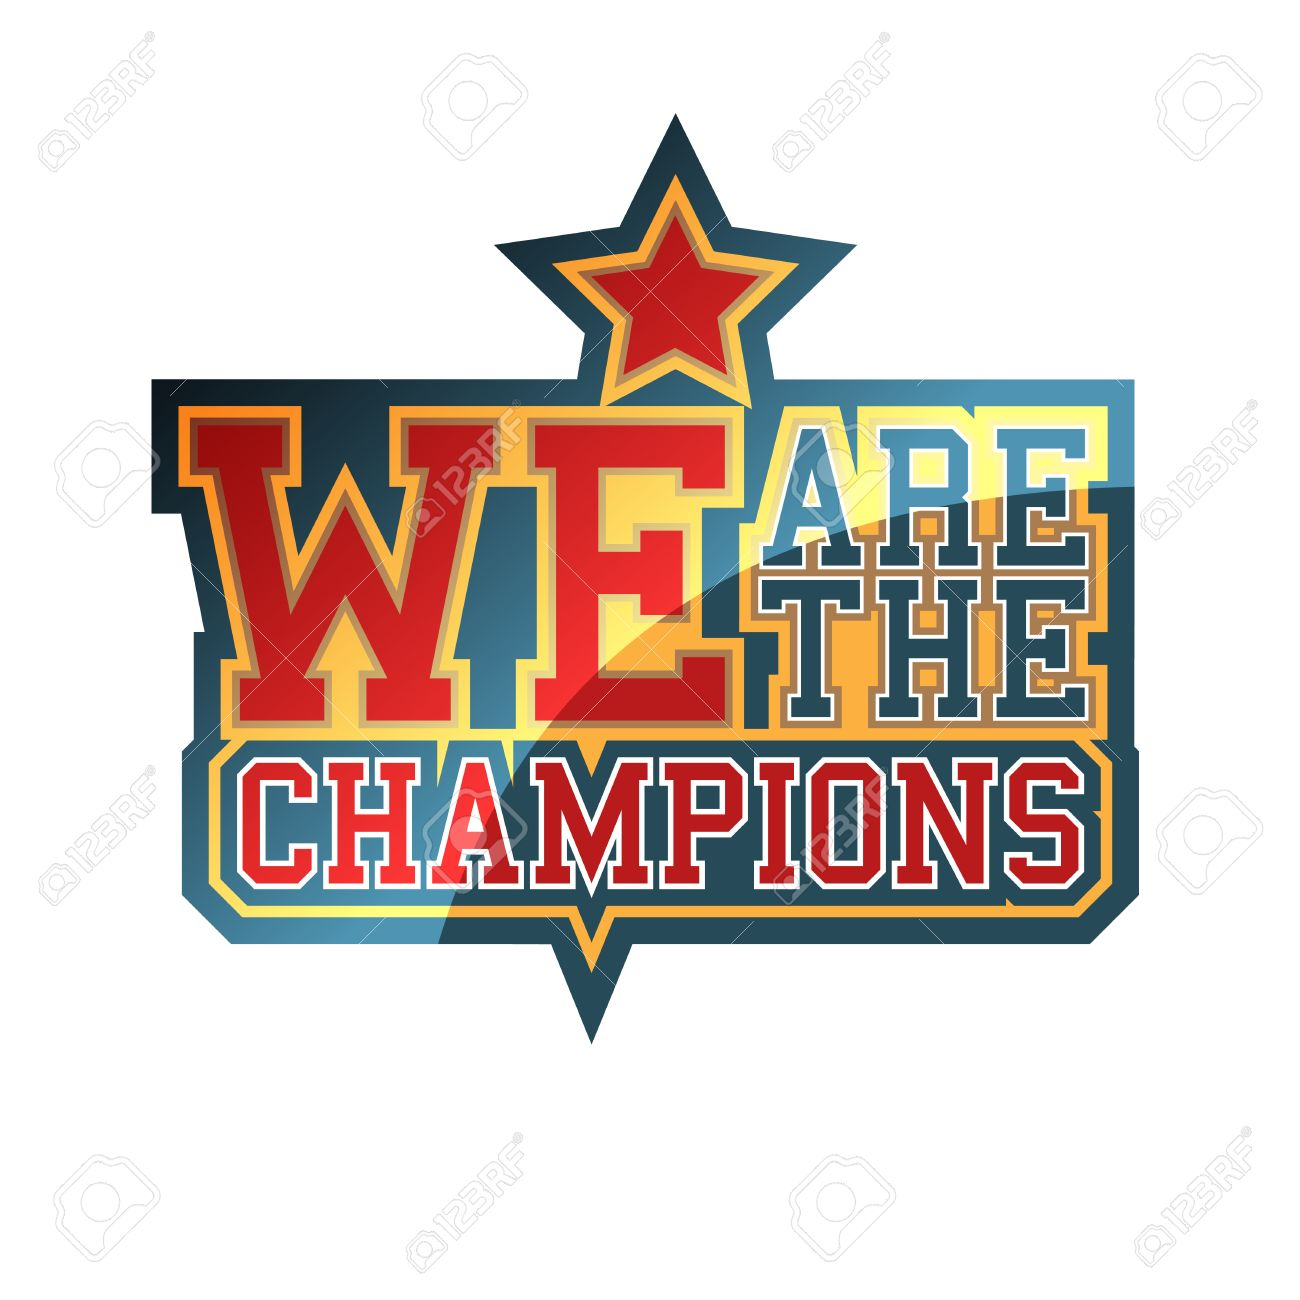 We are the champions sign royalty free cliparts vectors and stock vector we are the champions sign altavistaventures Gallery